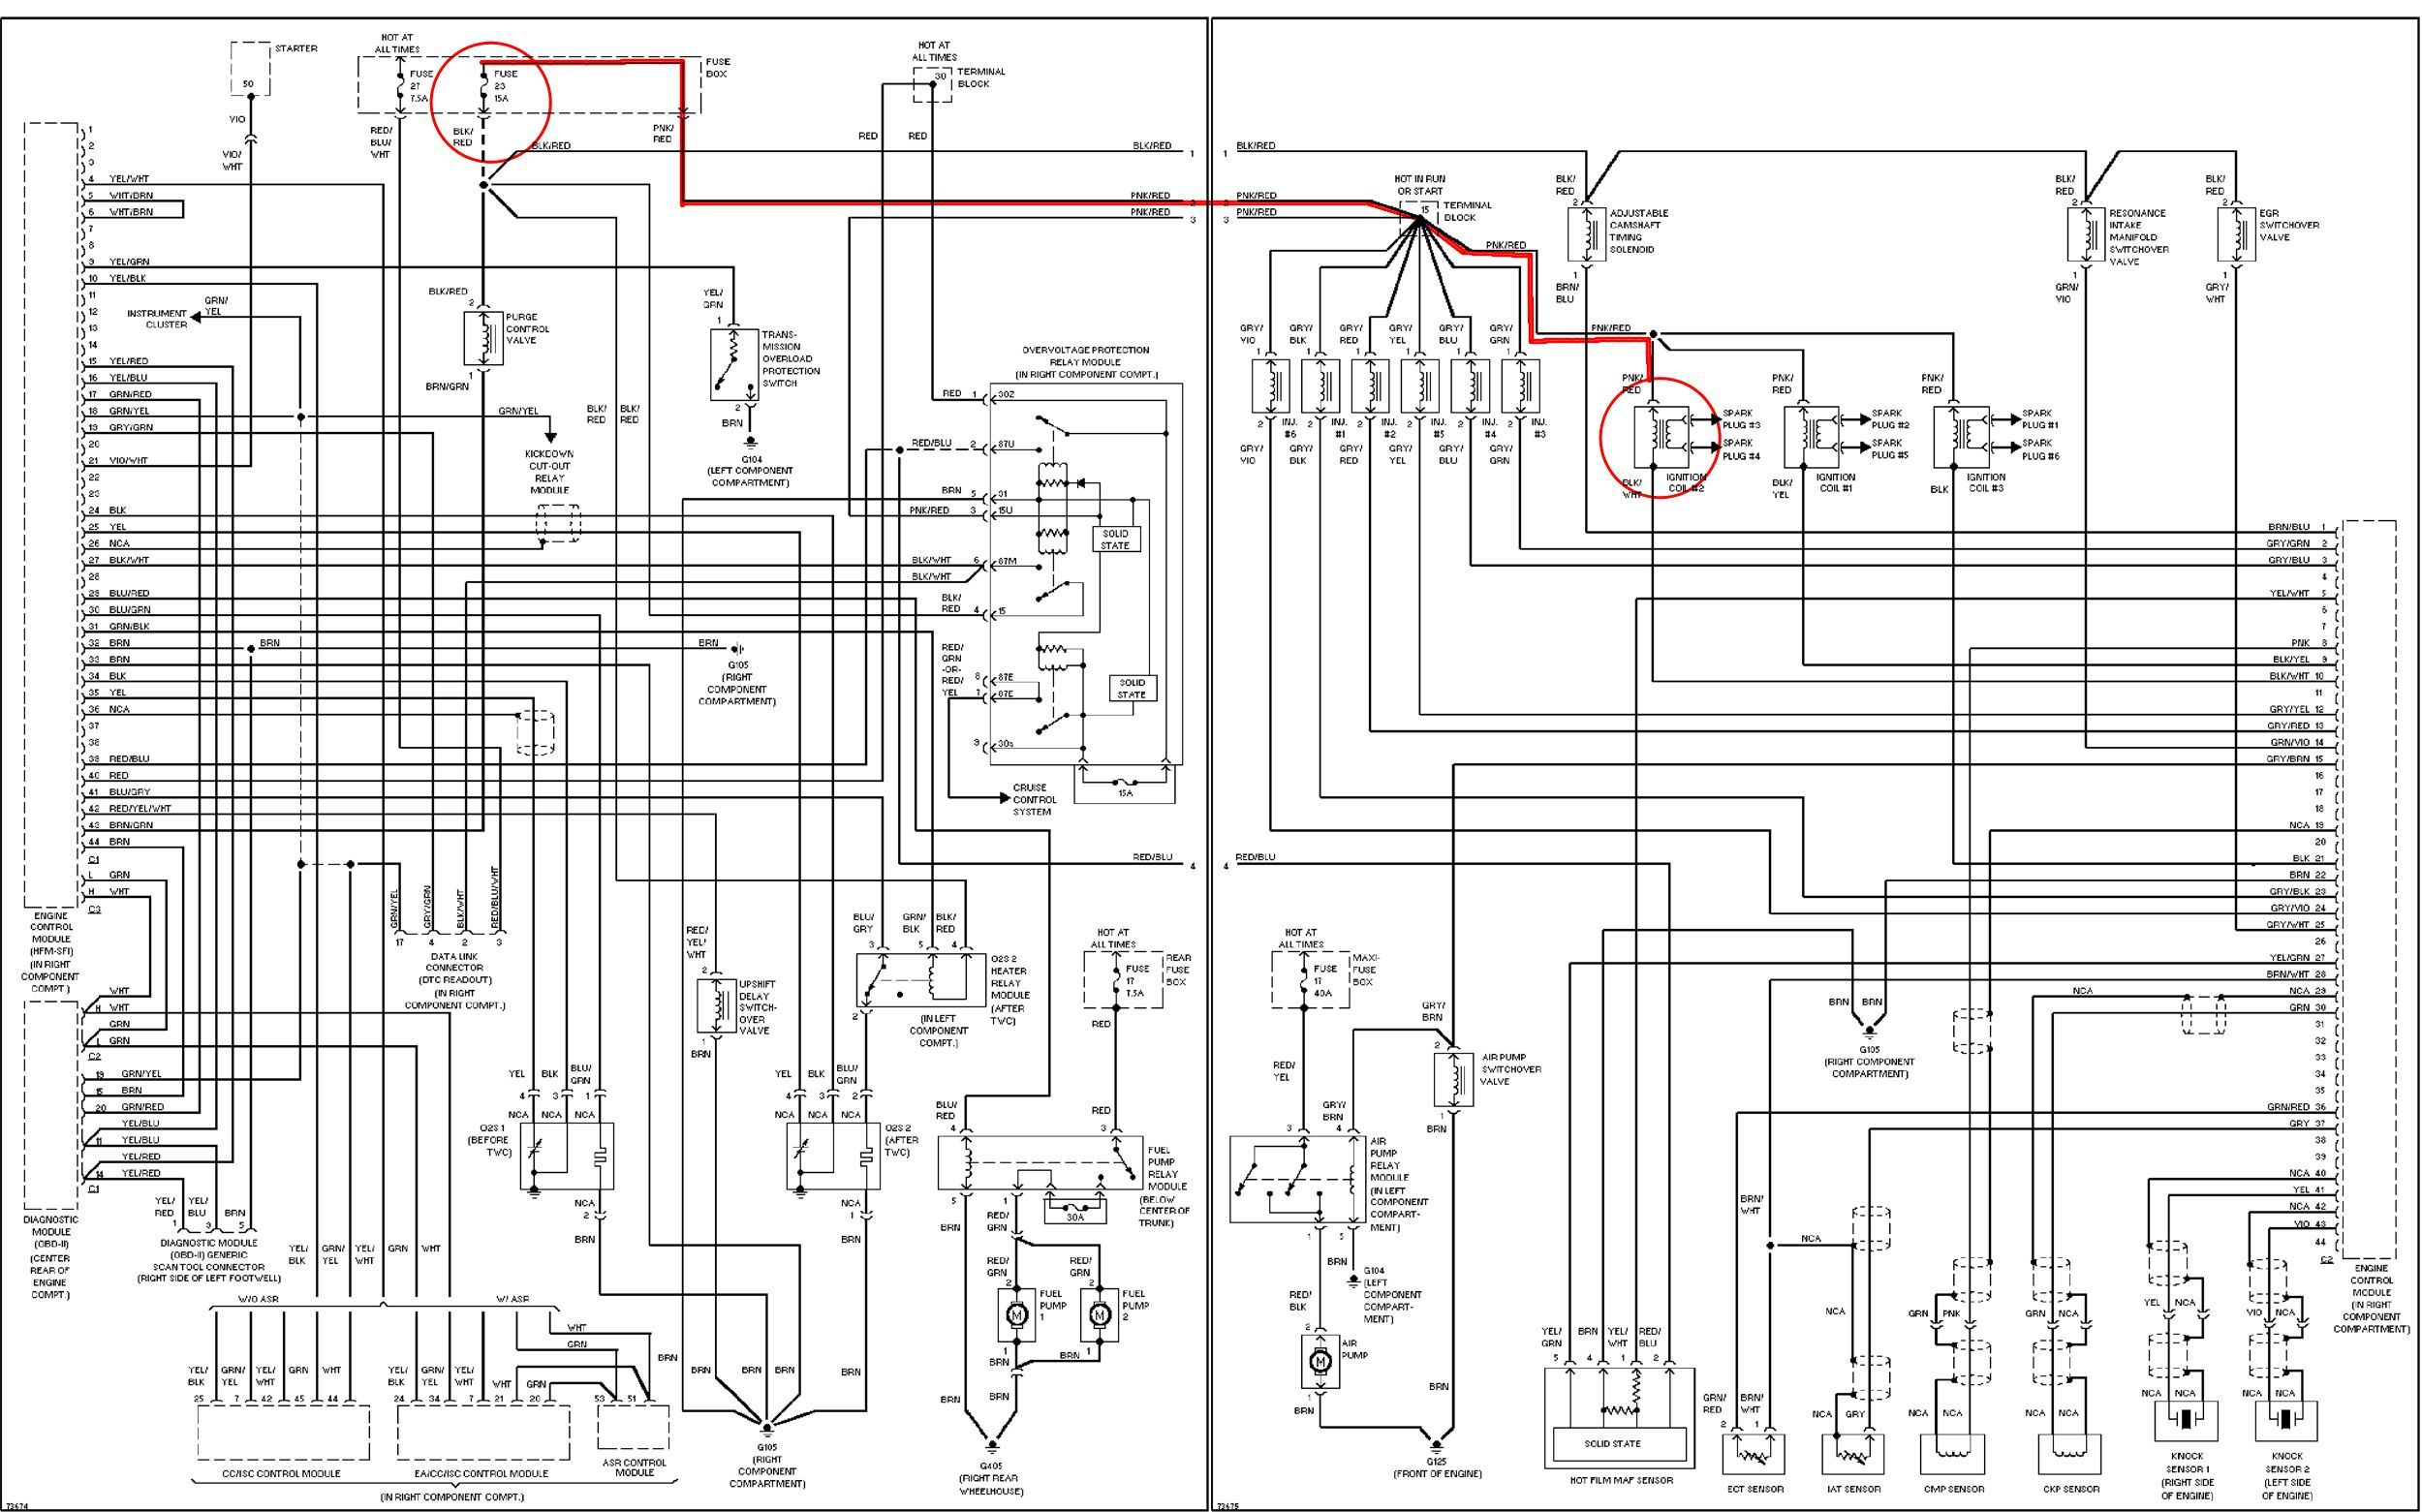 small resolution of free mercedes benz wiring diagrams wiring library mercedes benz ml320 engine diagram mercedes benz w123 wiring diagram